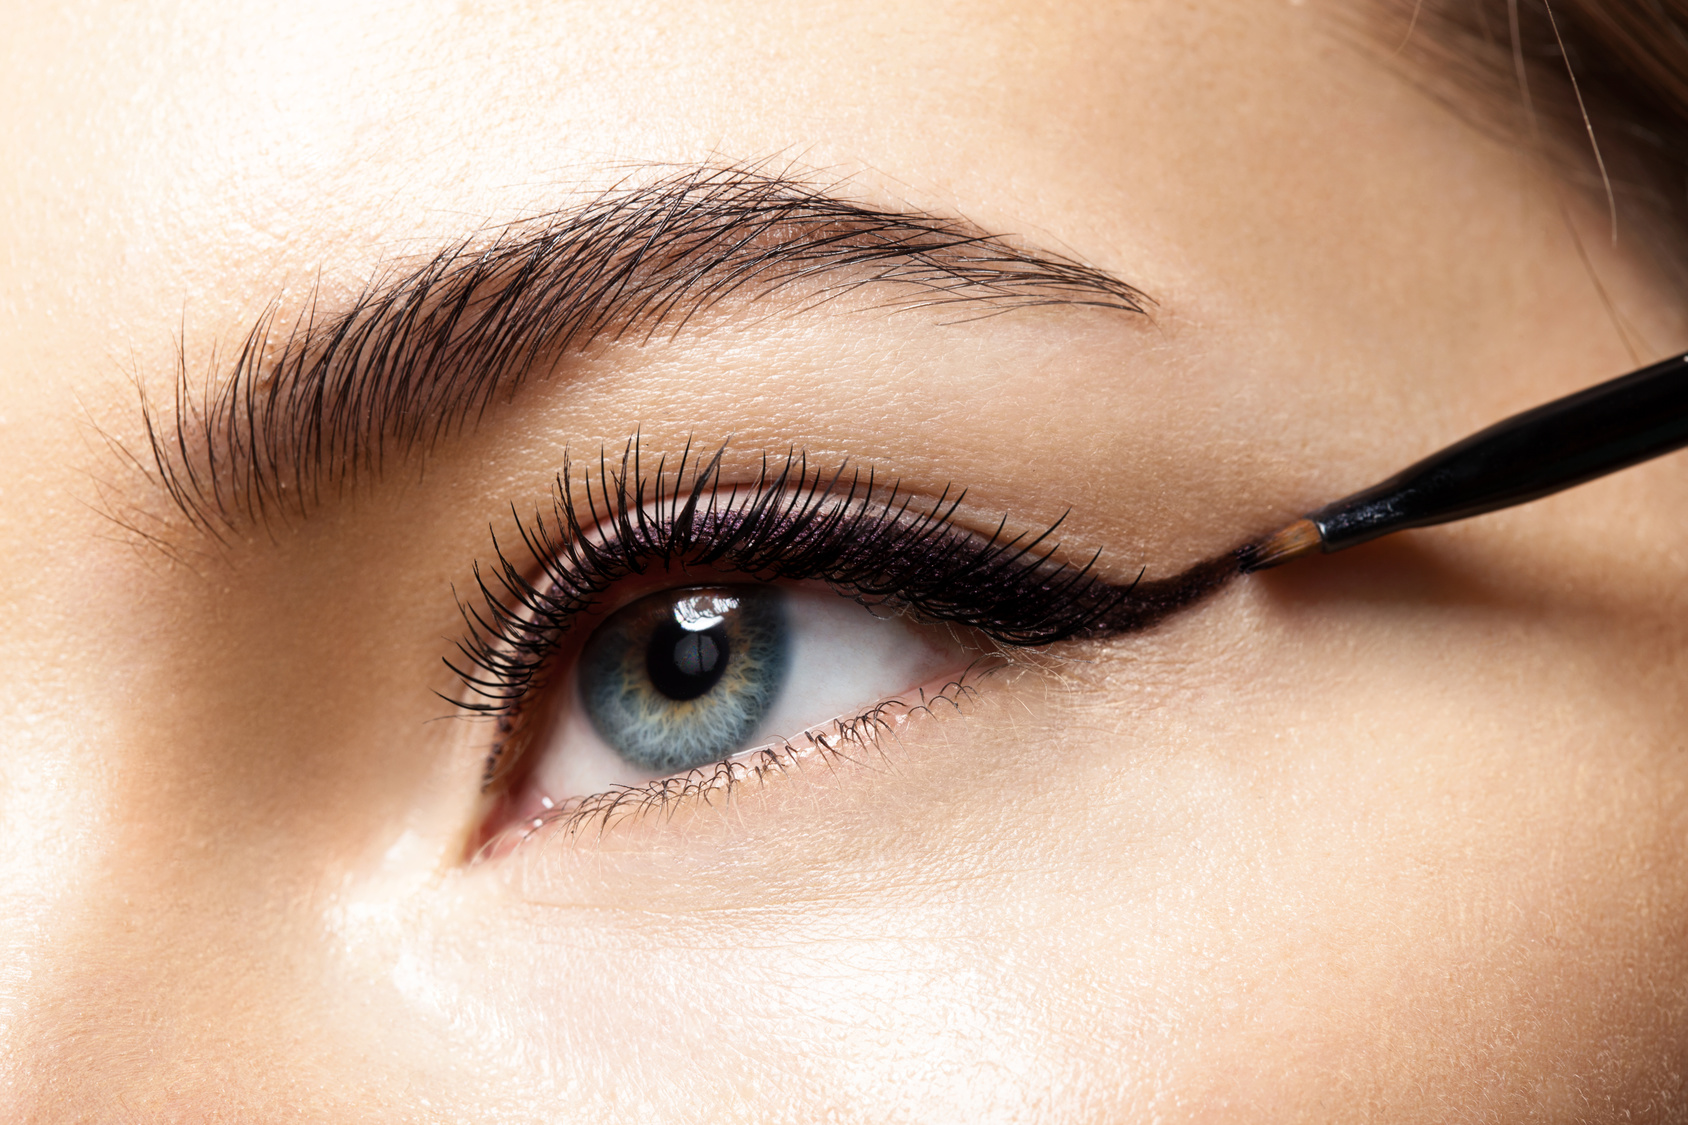 Make-up with black eyeliner close-up